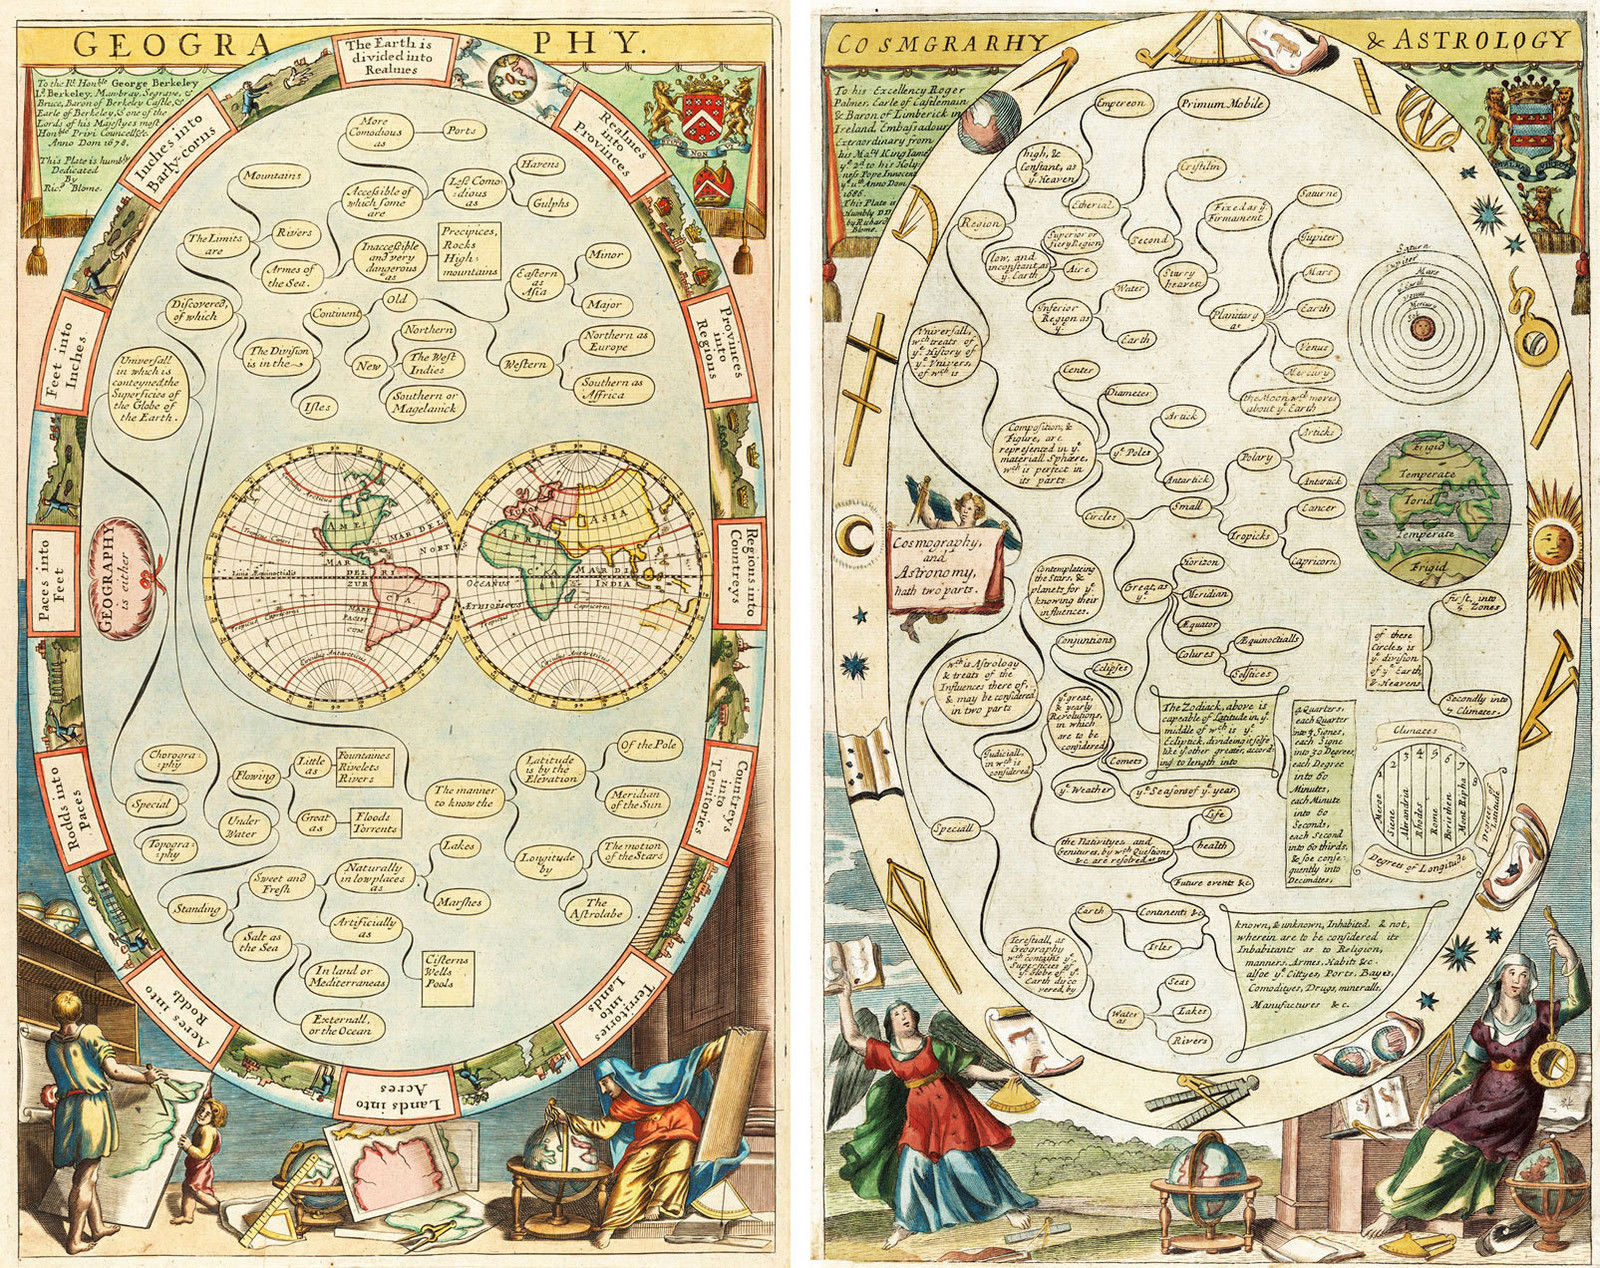 Primary image for Set of 2 1686 Map of the World Blome Astronomy Cosmography Geography Art Reprint